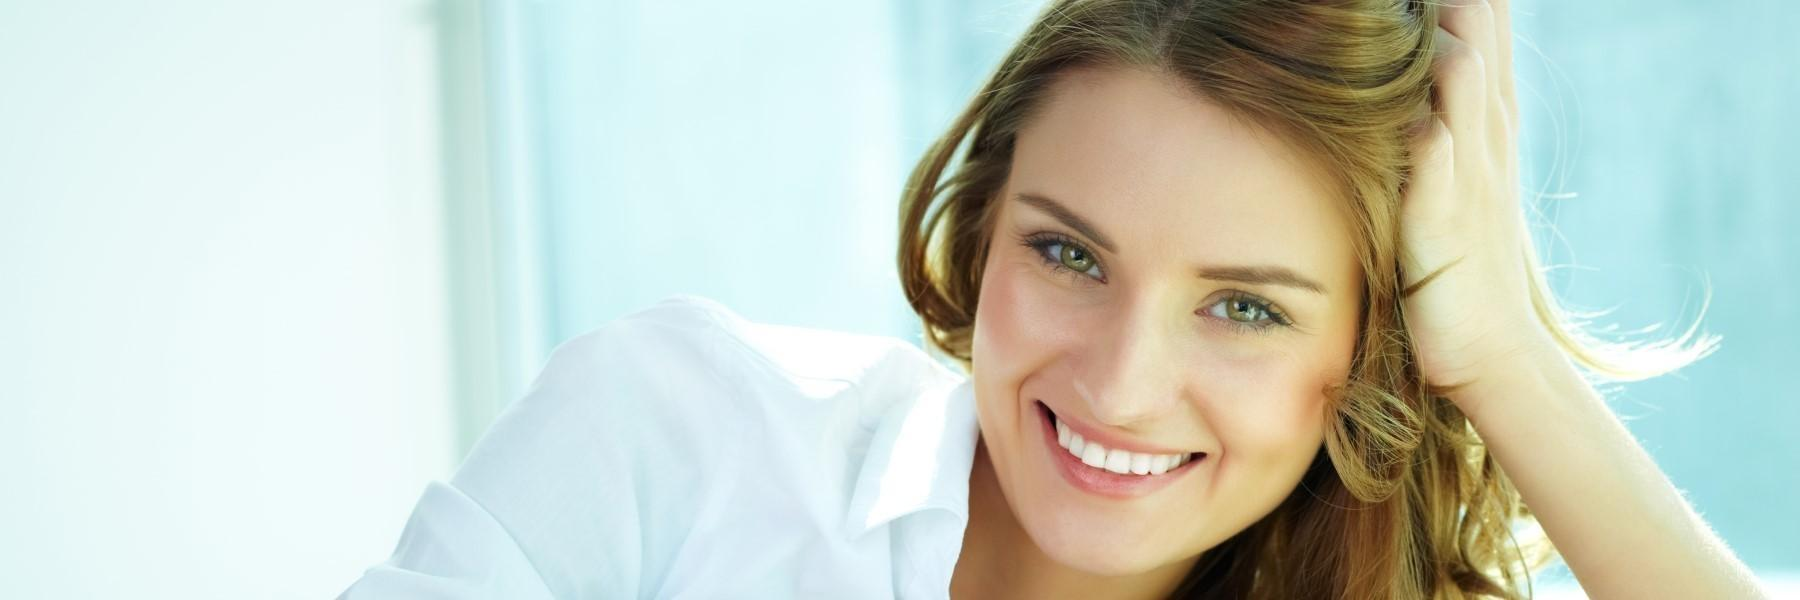 Woman smiling with white shirt | Dentist Los Gatos CA